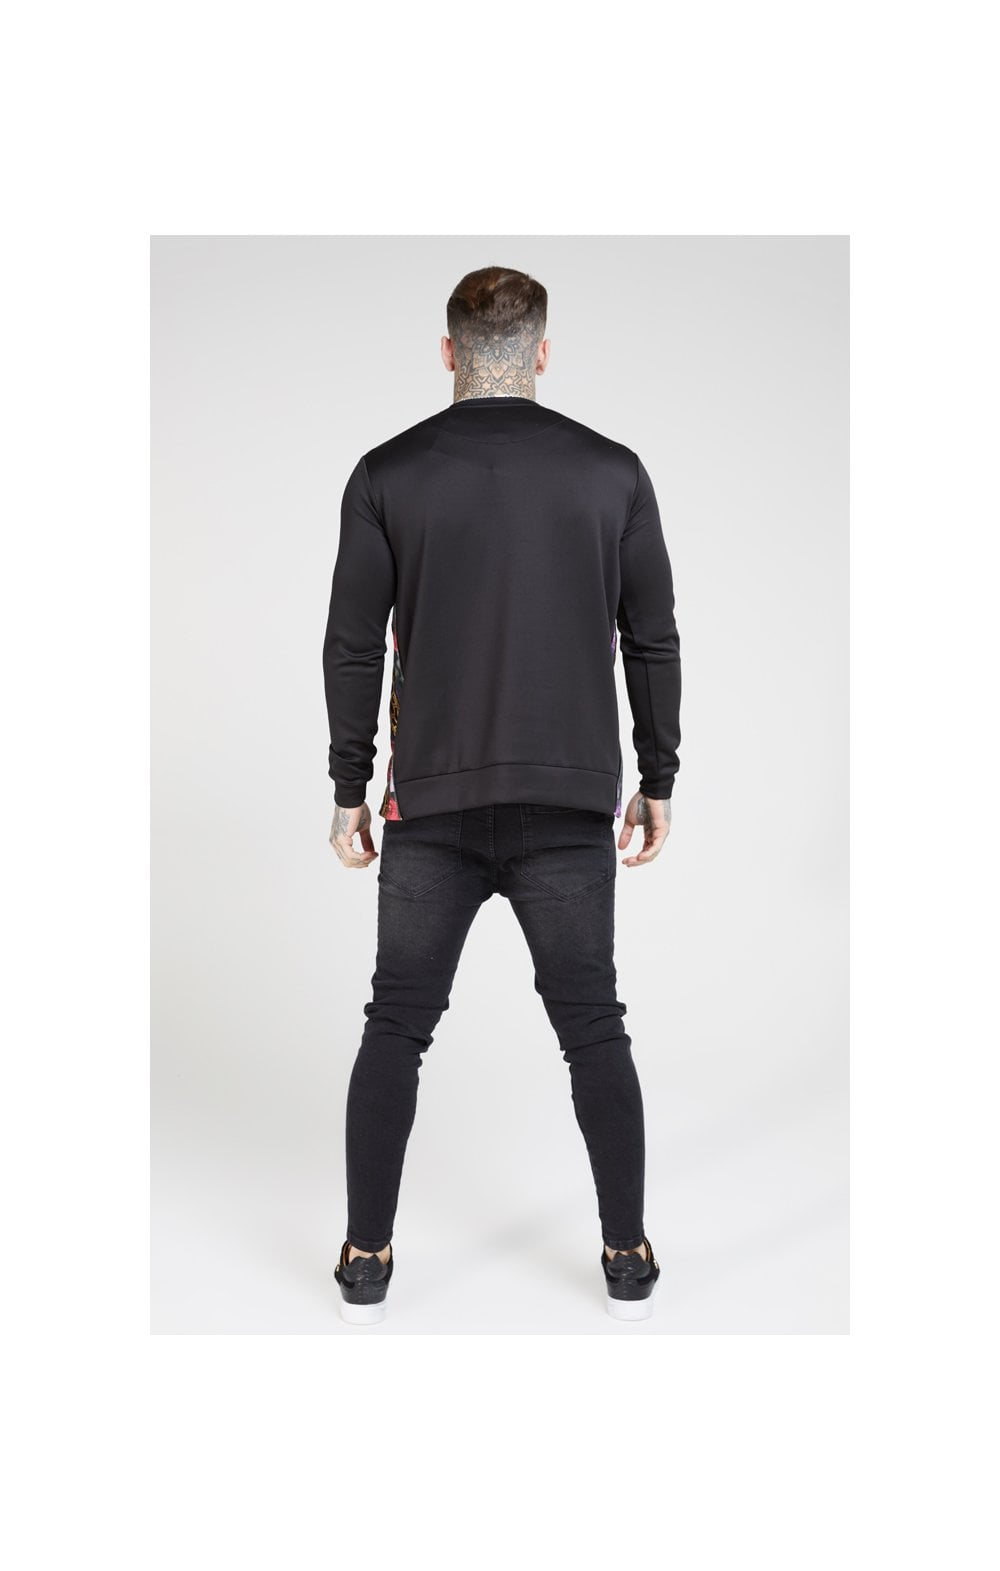 Load image into Gallery viewer, SikSilk Side Zip Crew Sweat – Black & Oil Paint (5)